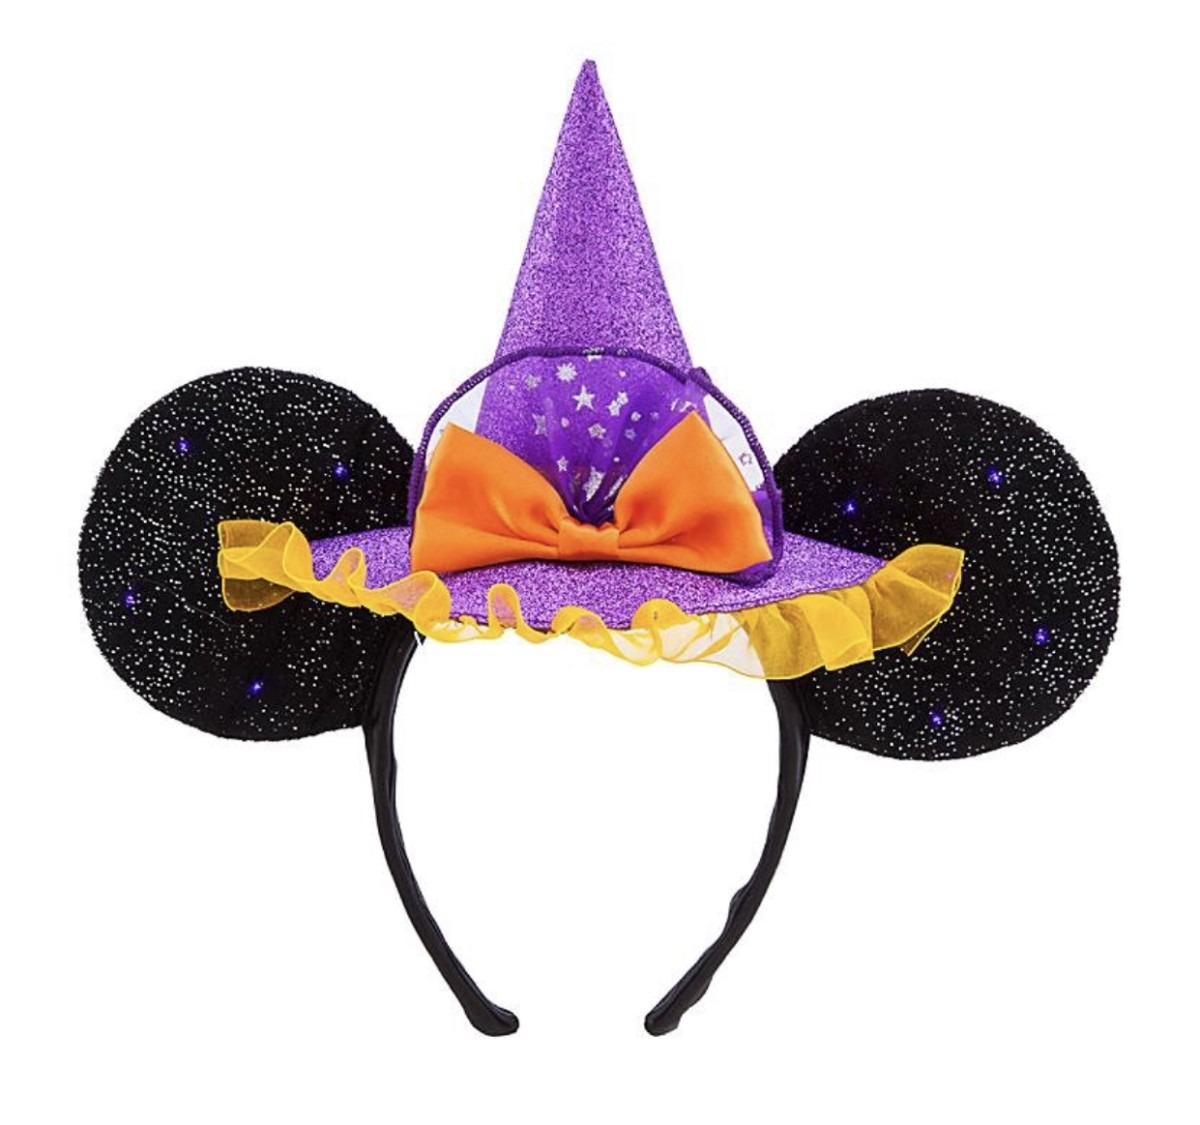 New LED Minnie Witch Ears for Halloween on shopDisney! 1